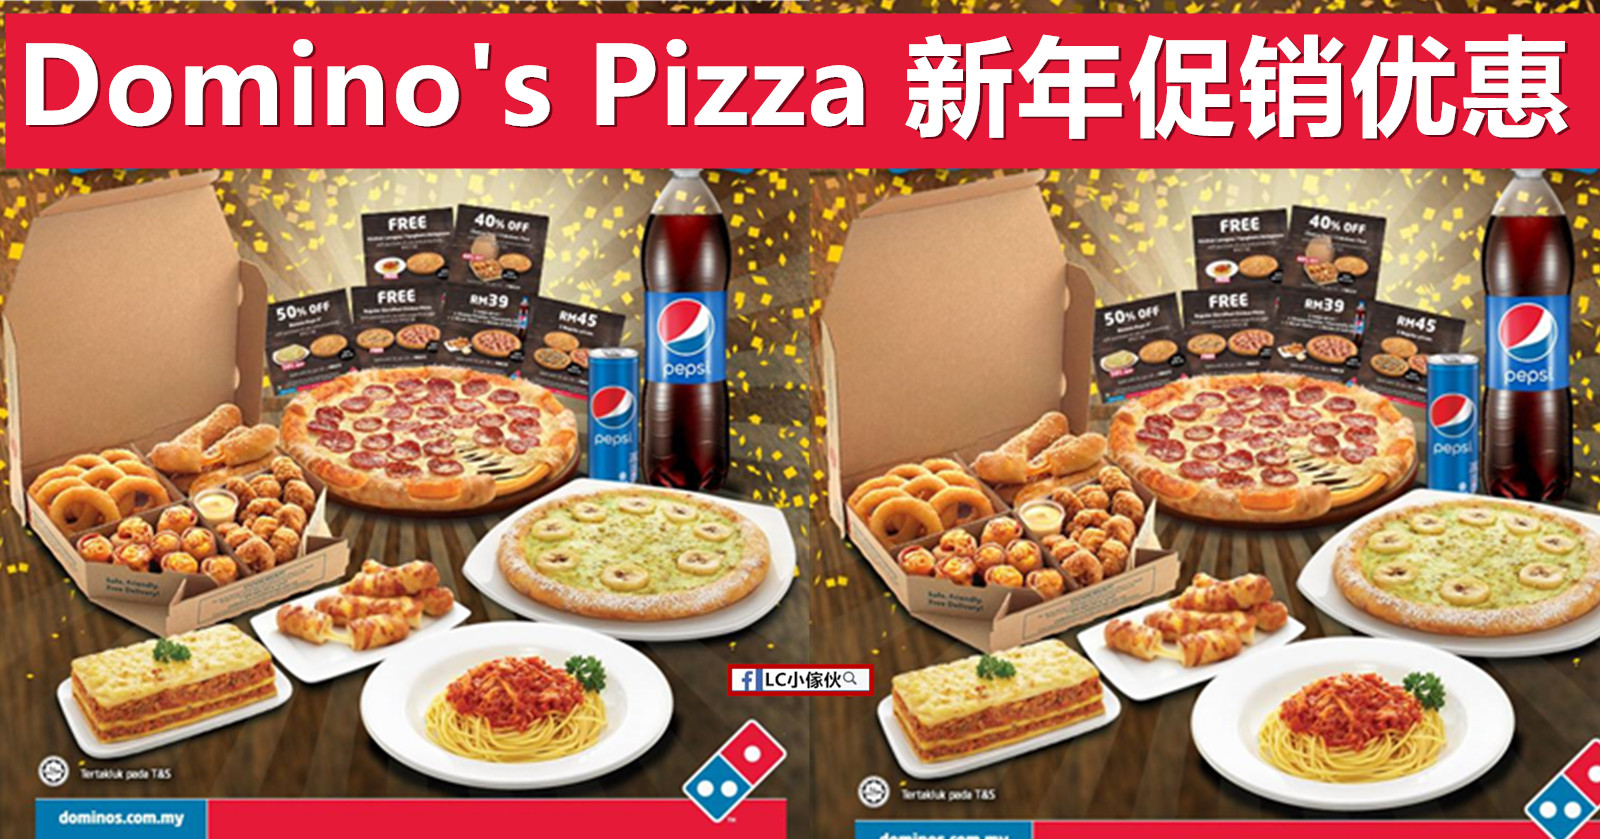 Order pizza, pasta, sandwiches & more online for carryout or Delicious Pizza Toppings · Wings & Breadsticks · % Canadian Cheese · Desserts & MoreTypes: Feast Pizzas, Pastas, Chicken, Breads, Desserts, Drinks.